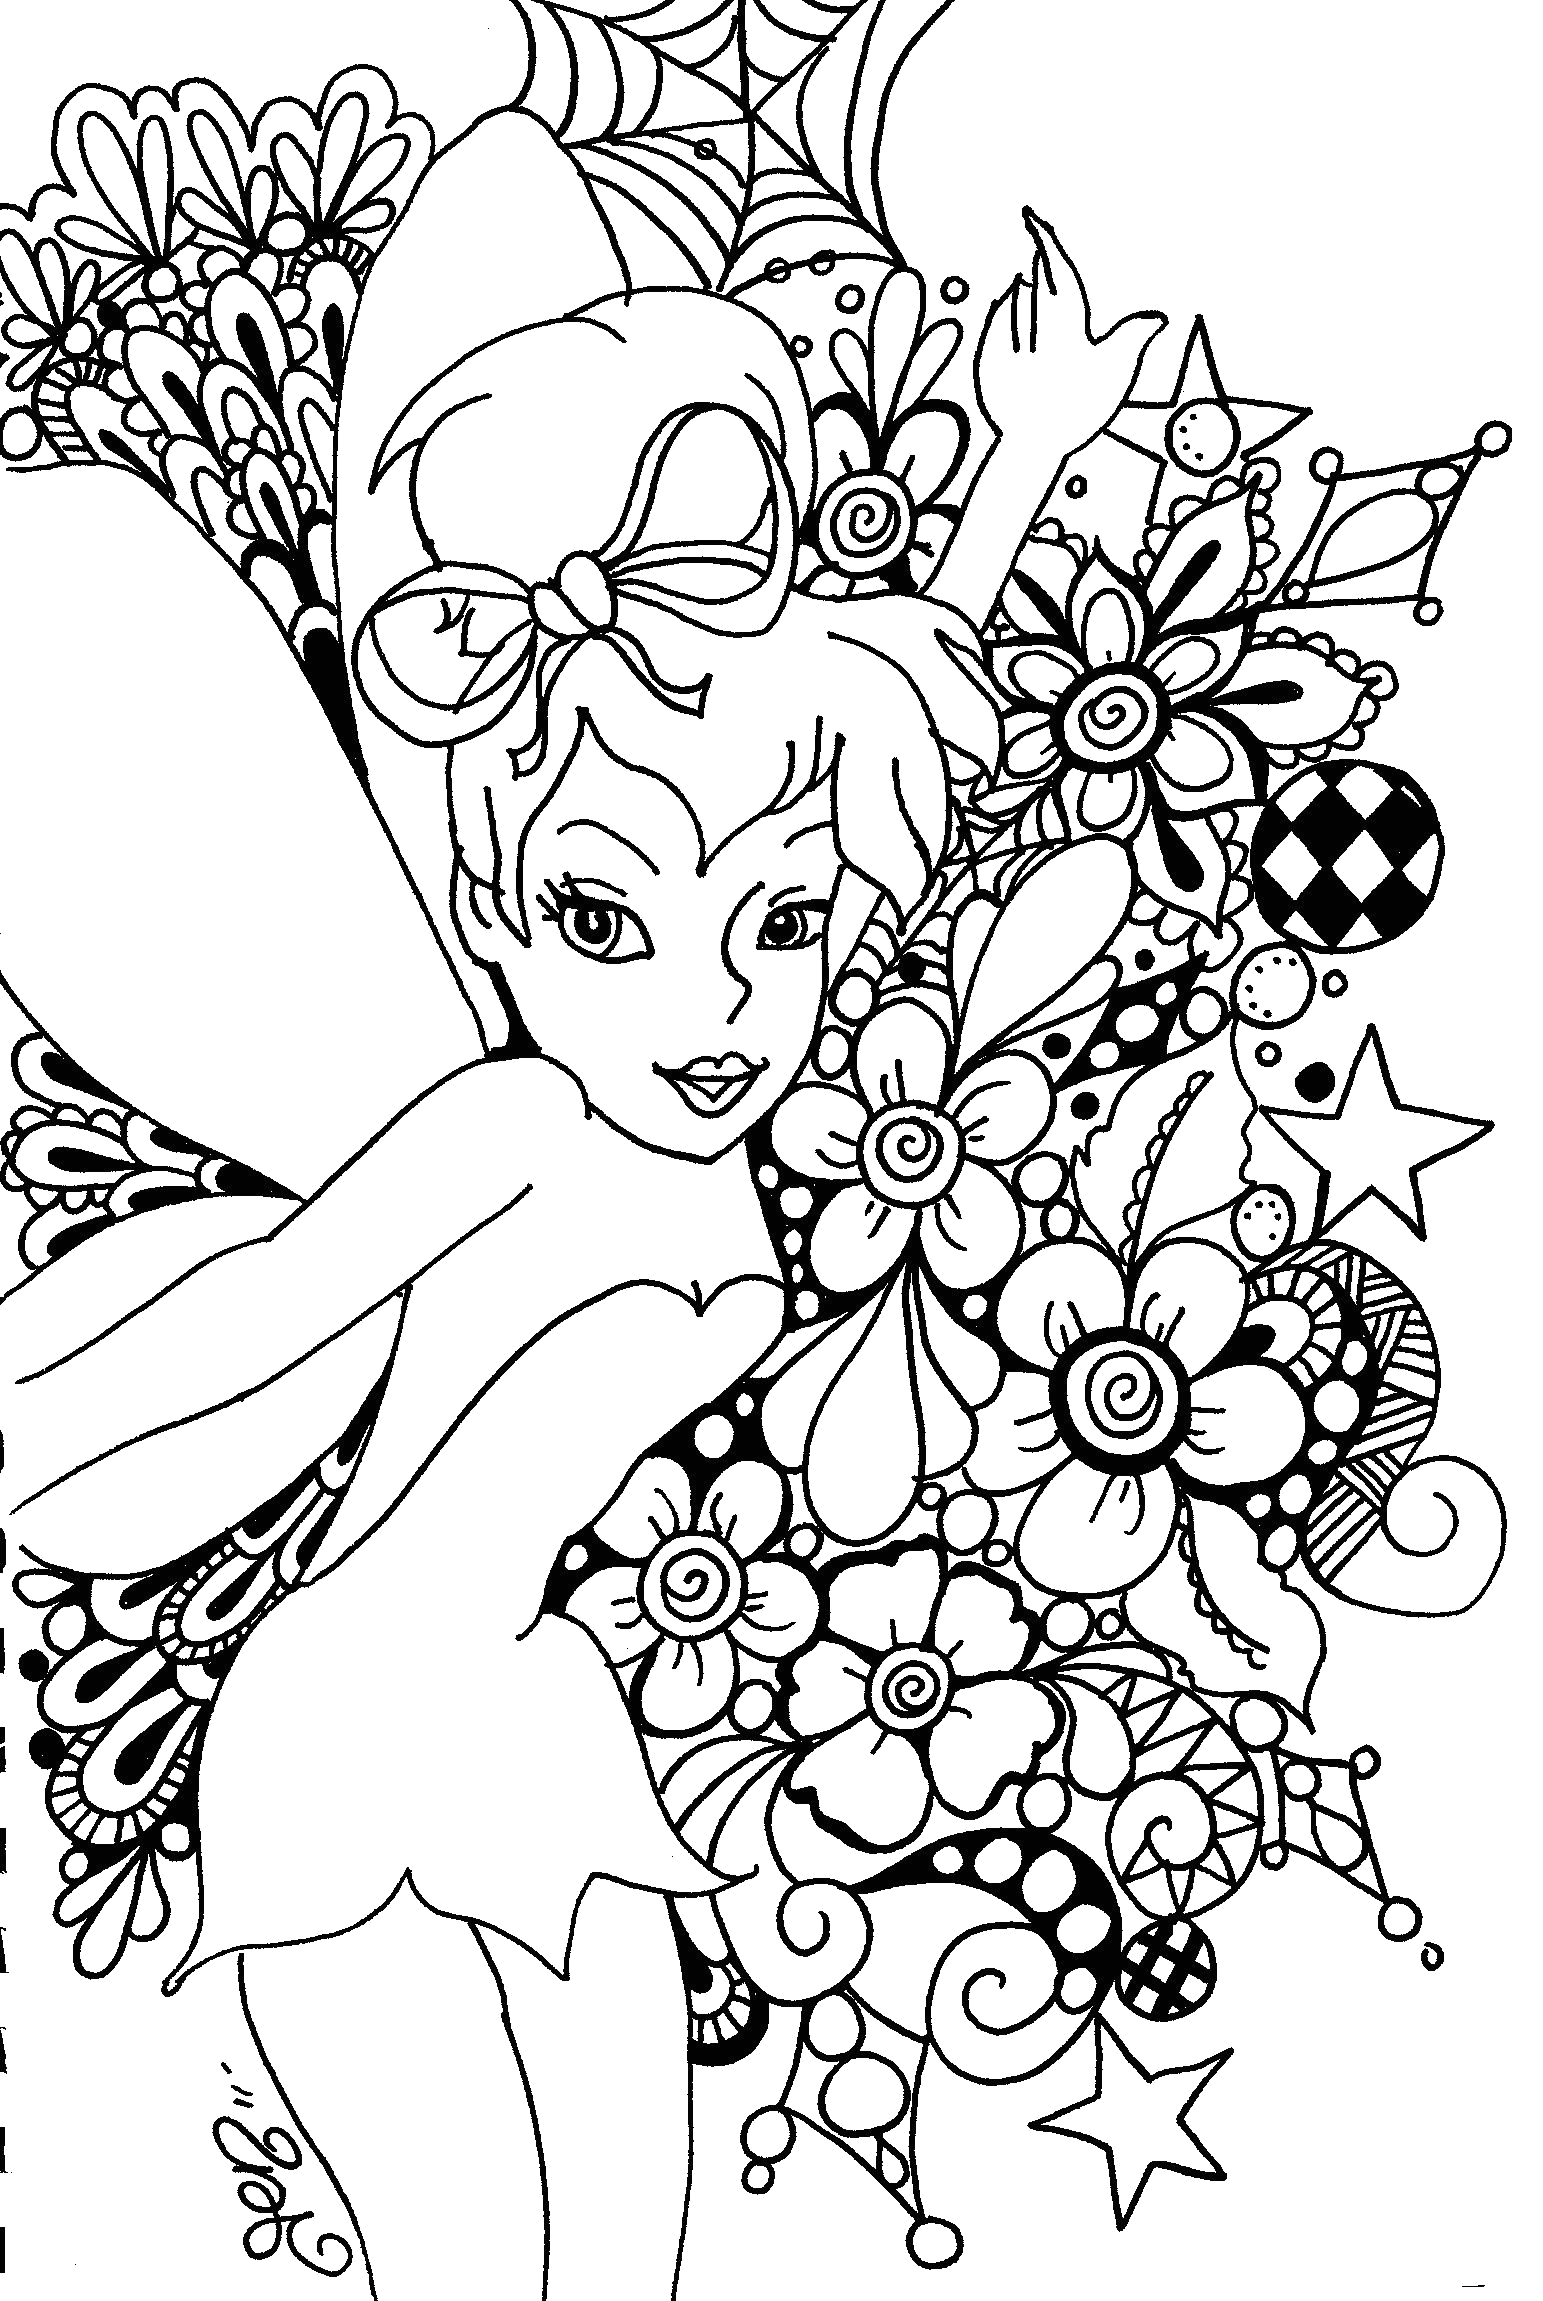 Free Printable Disney Coloring Pages for Adults Free Printable Tinkerbell Coloring Pages for Kids